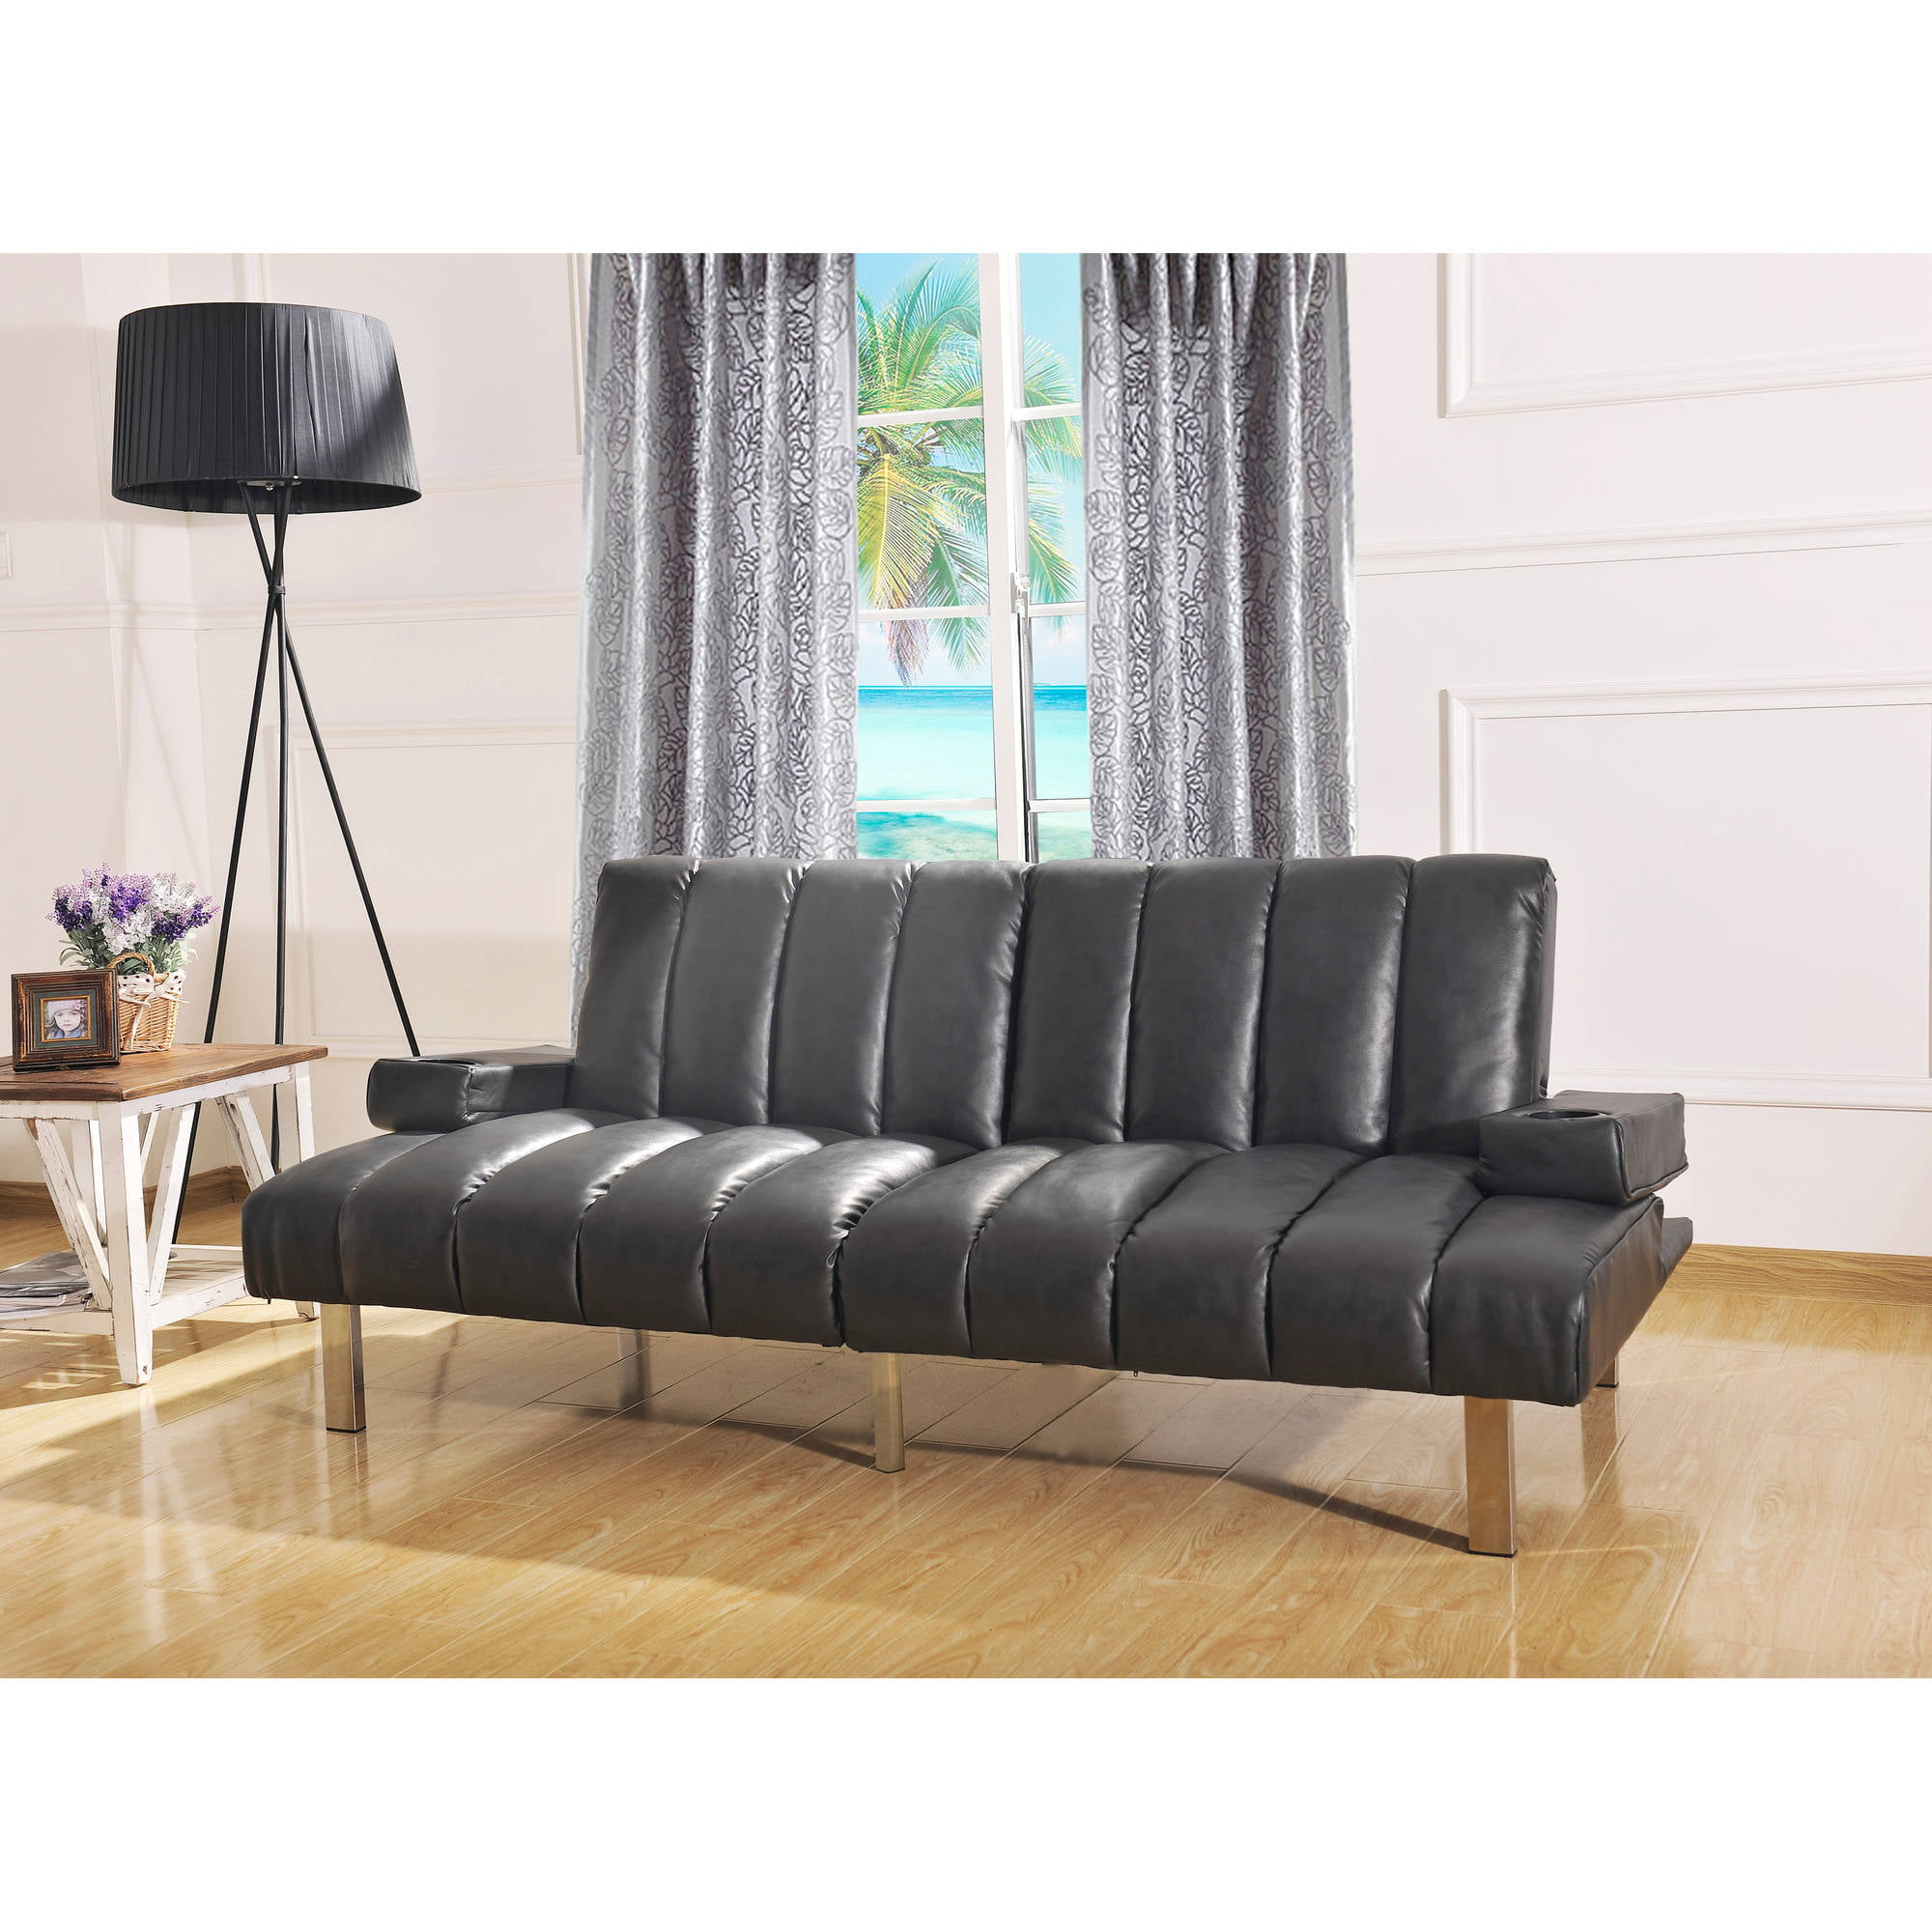 Mainstays Theater Futon Black Walmart